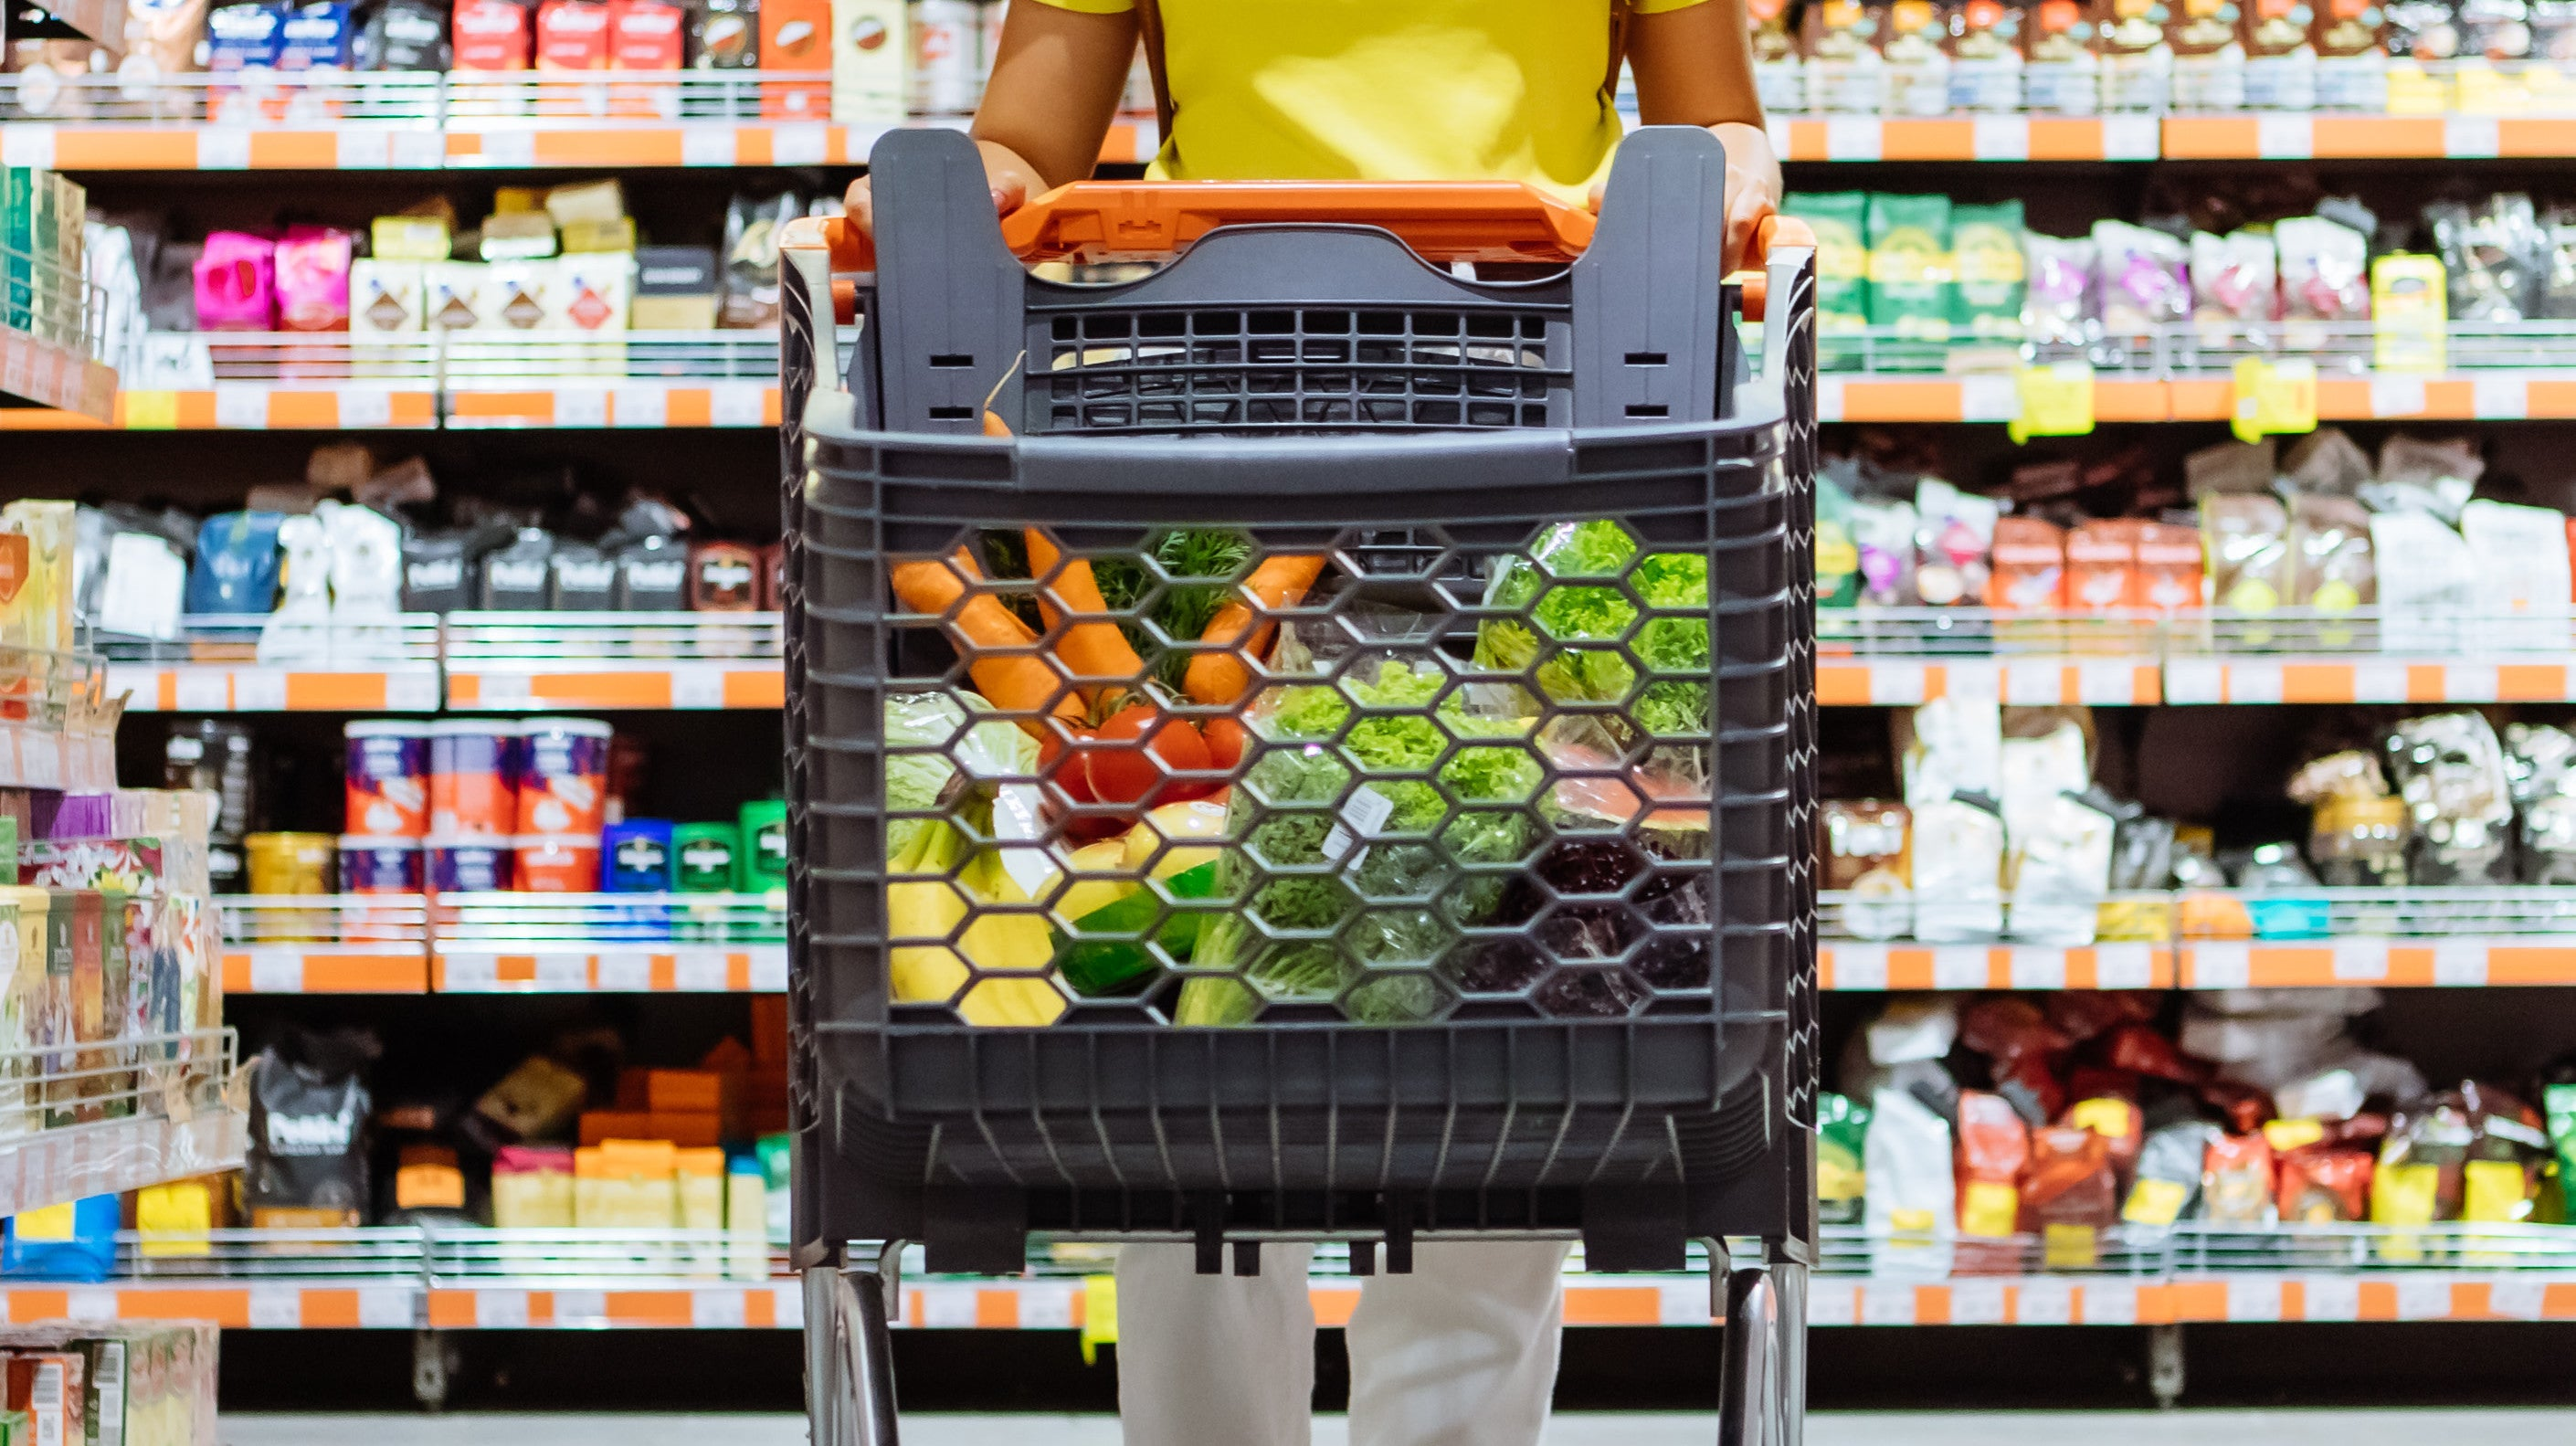 Be Mindful About Purchasing WIC Items At The Grocery Store Right Now